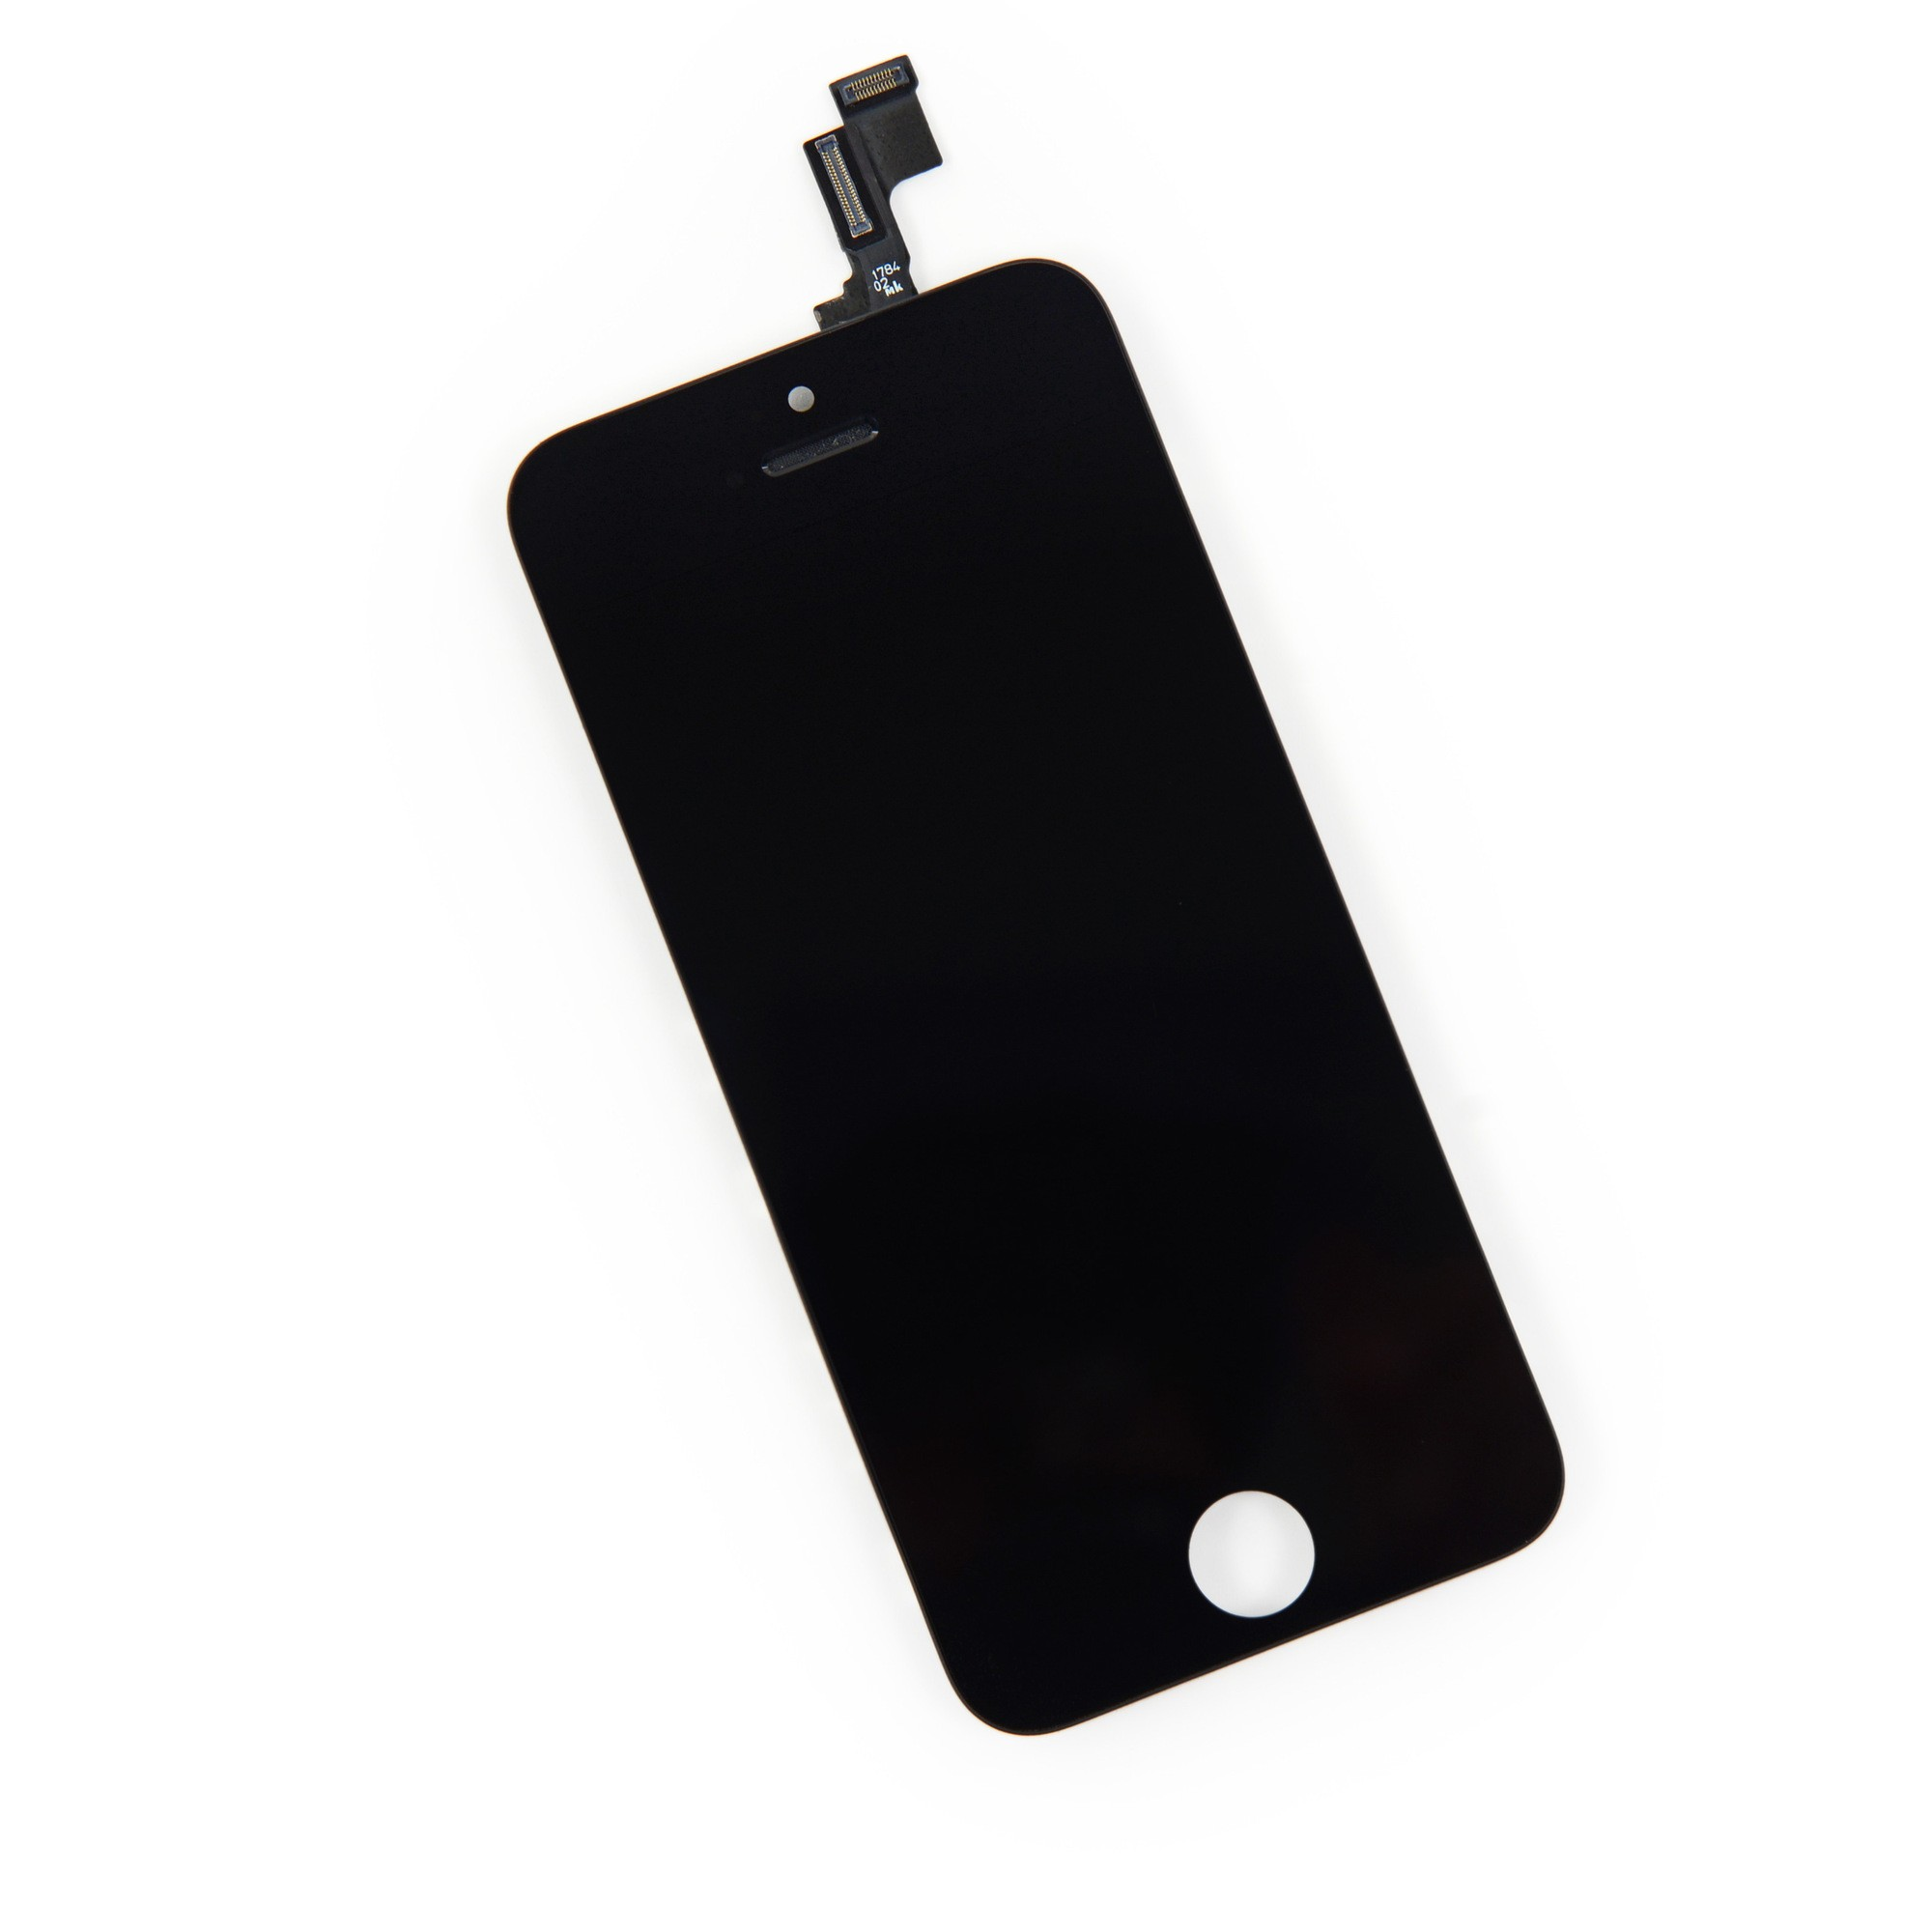 iPhone 5s LCD Screen and Digitizer, New, Part Only - Black, IF124-001-1